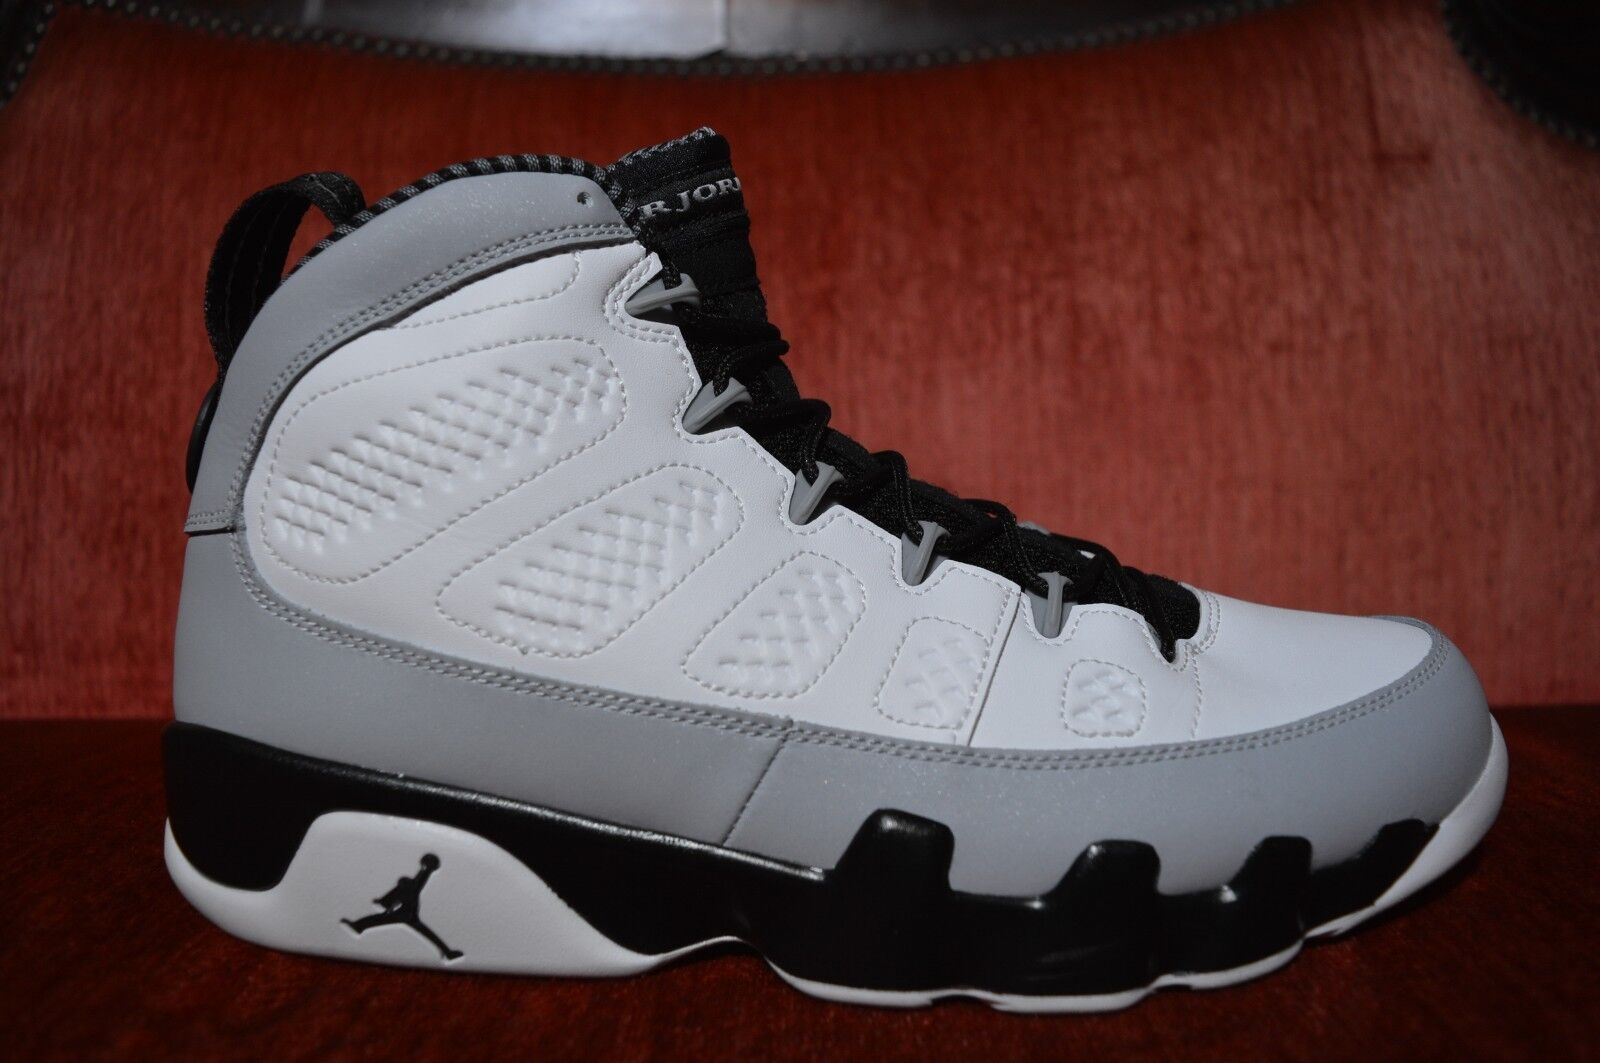 Nike AIR RETRO JORDAN 9 IX BARON BLACK WHITE WOLF GREY 302370 106 SIZE 9.5